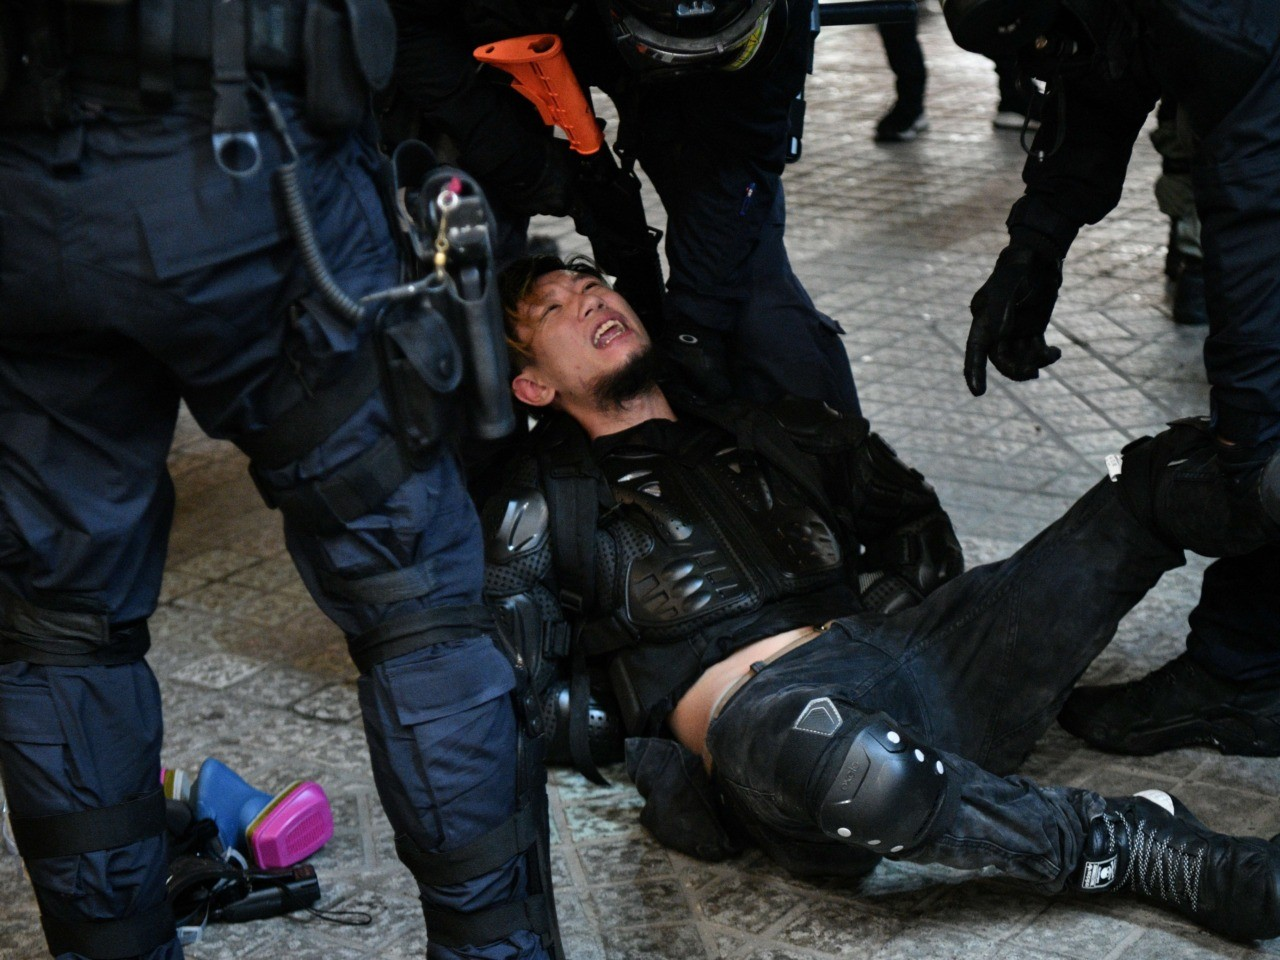 Exclusive: Hong Kong Volunteers Document Extreme Police Brutality, Urge Journalists to Help